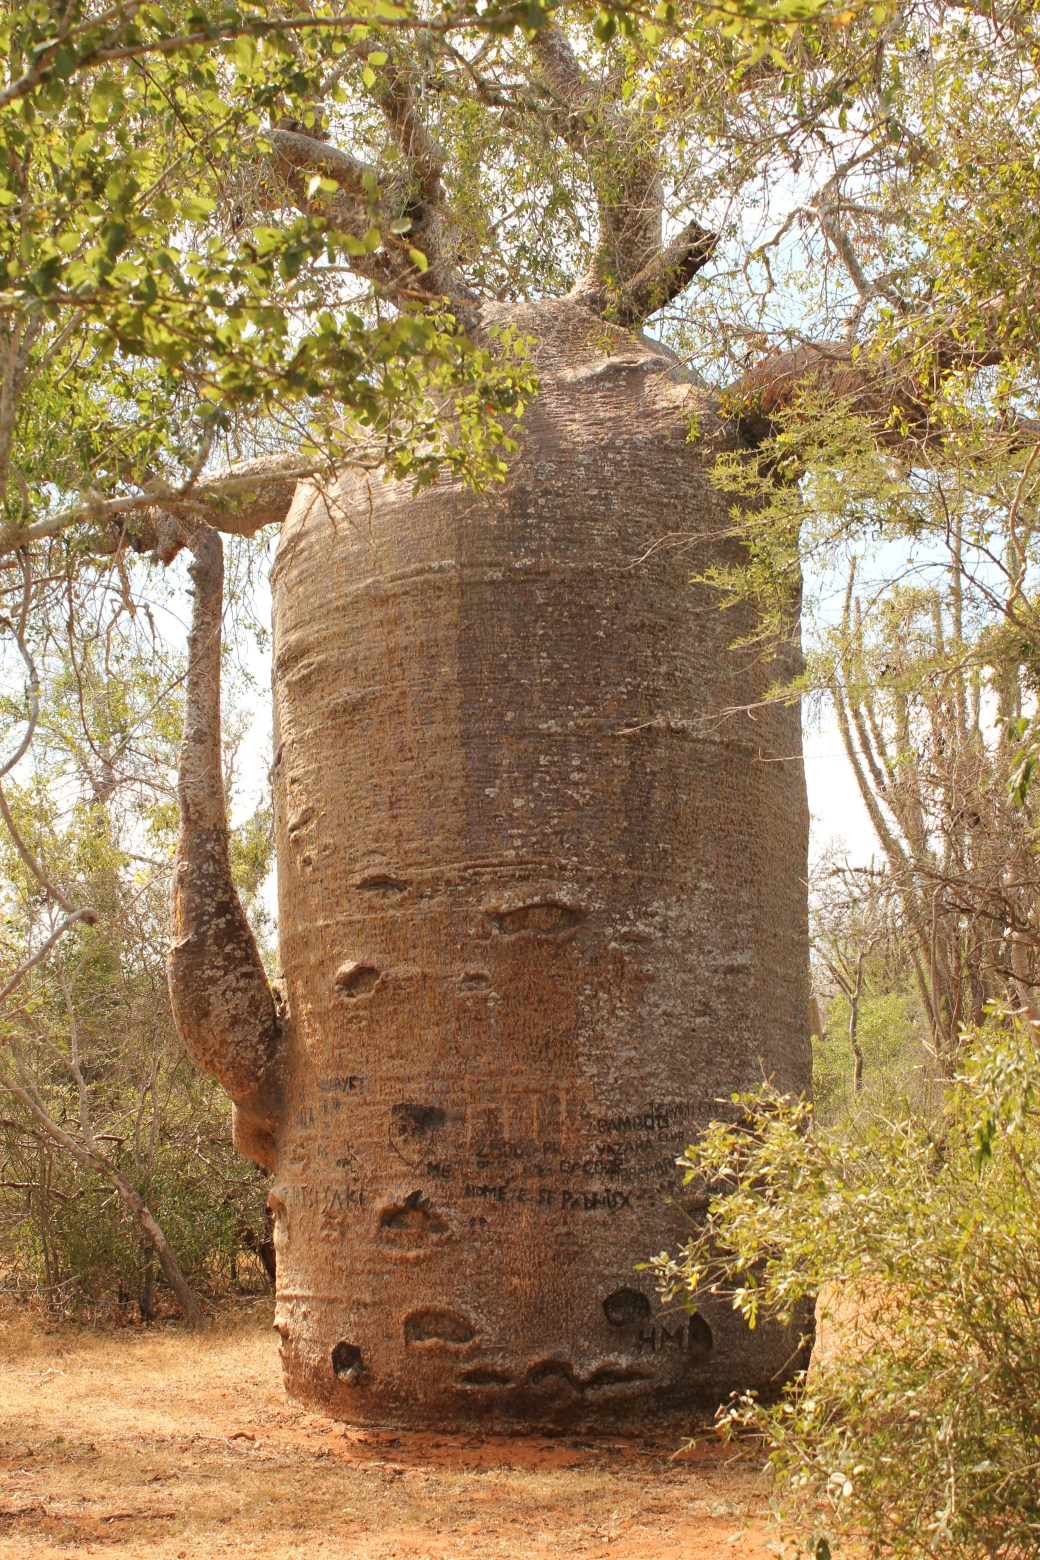 500+ Year Old Baobab Tree; Ifaty, Republic of Madagascar; 2013